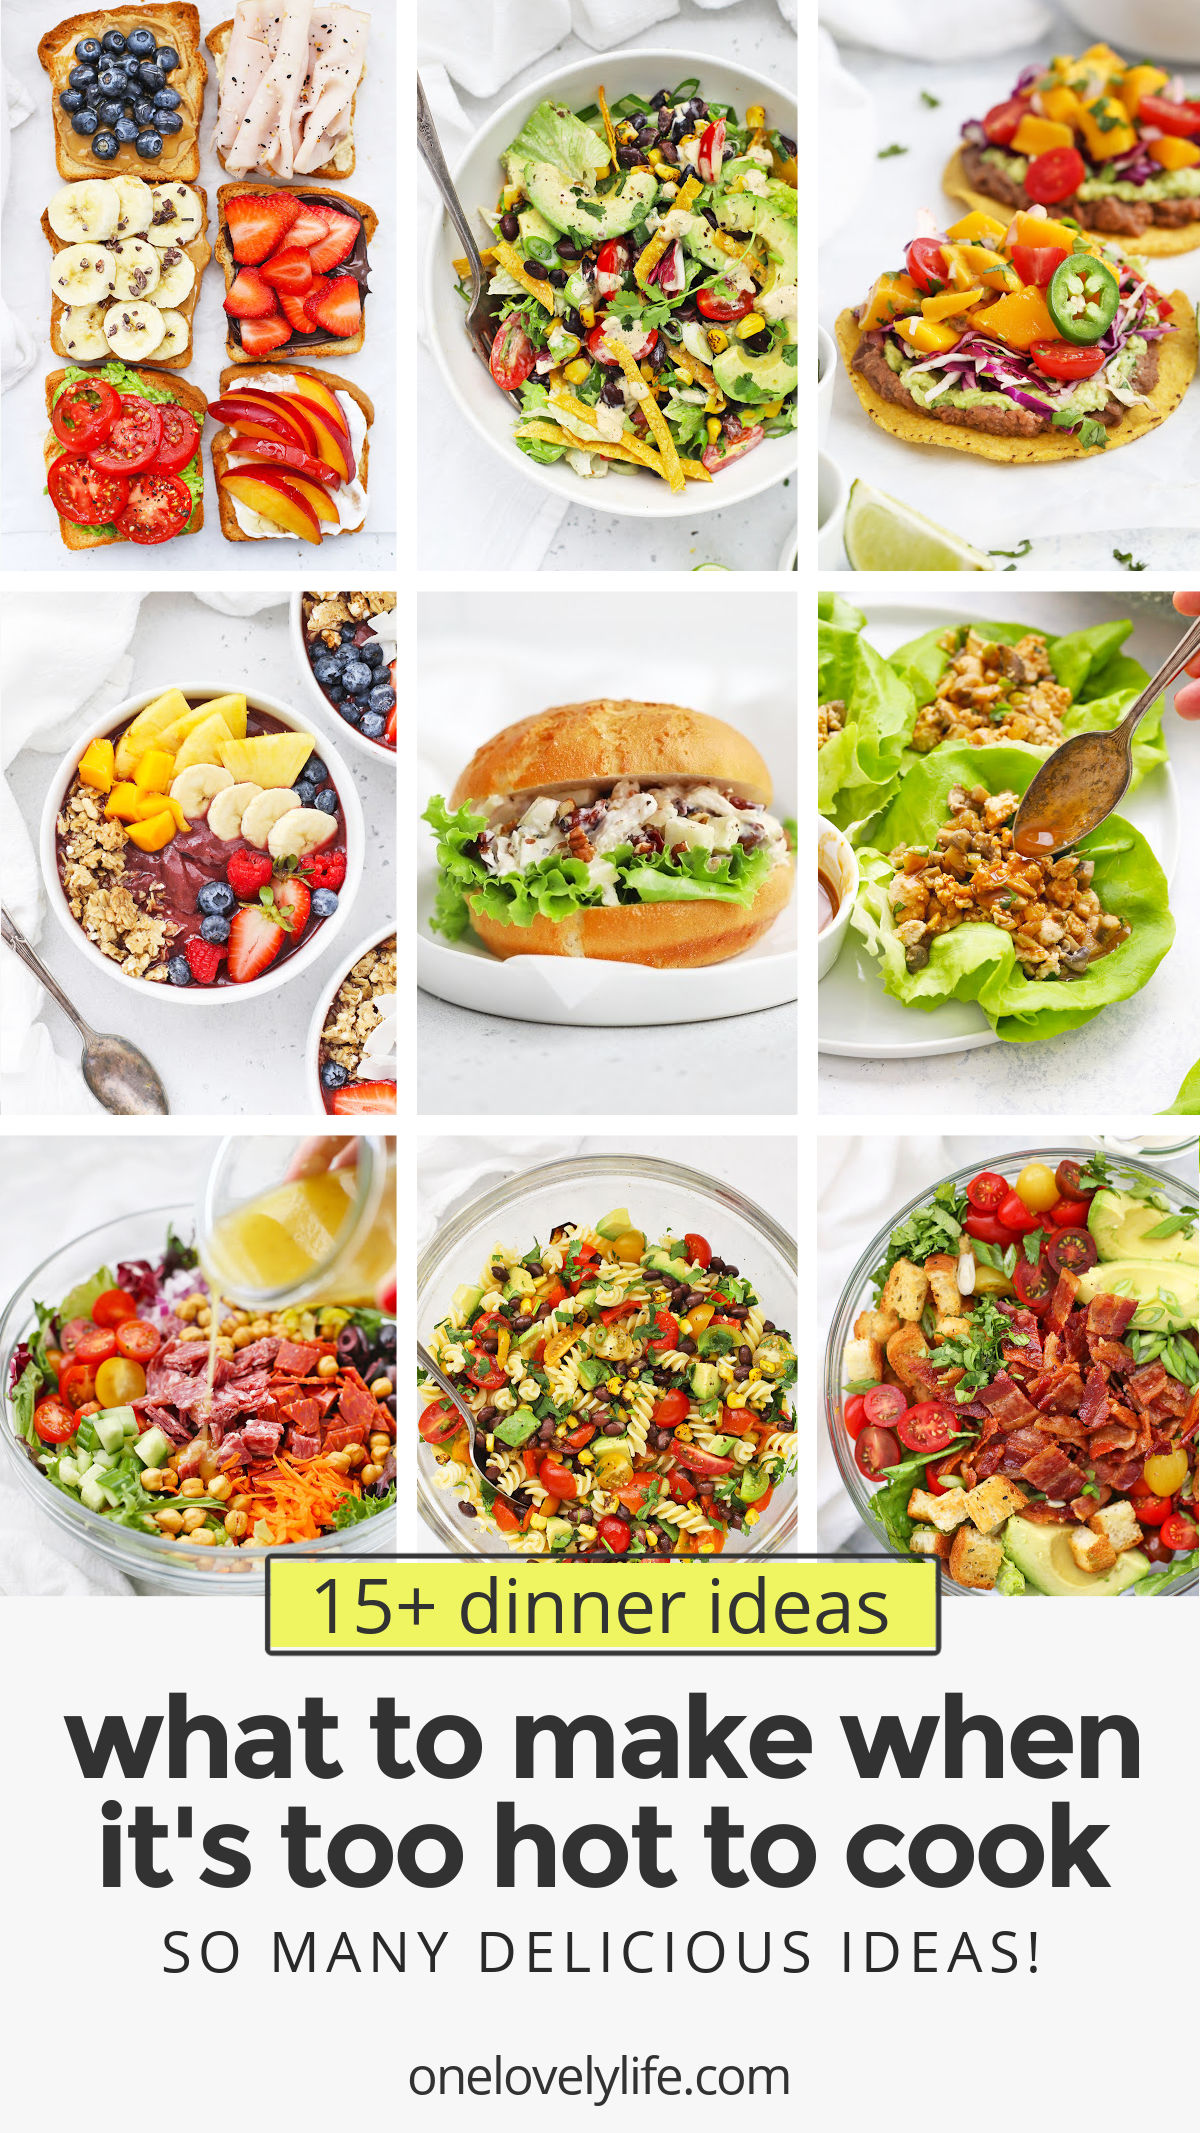 15+ Recipes to Make When It's Too Hot to Cook. These Low-Cook and No-Cook Dinners are Perfect for a Hot Day! Gluten-Free, Dairy-Free, Vegan, and Paleo Options Included!